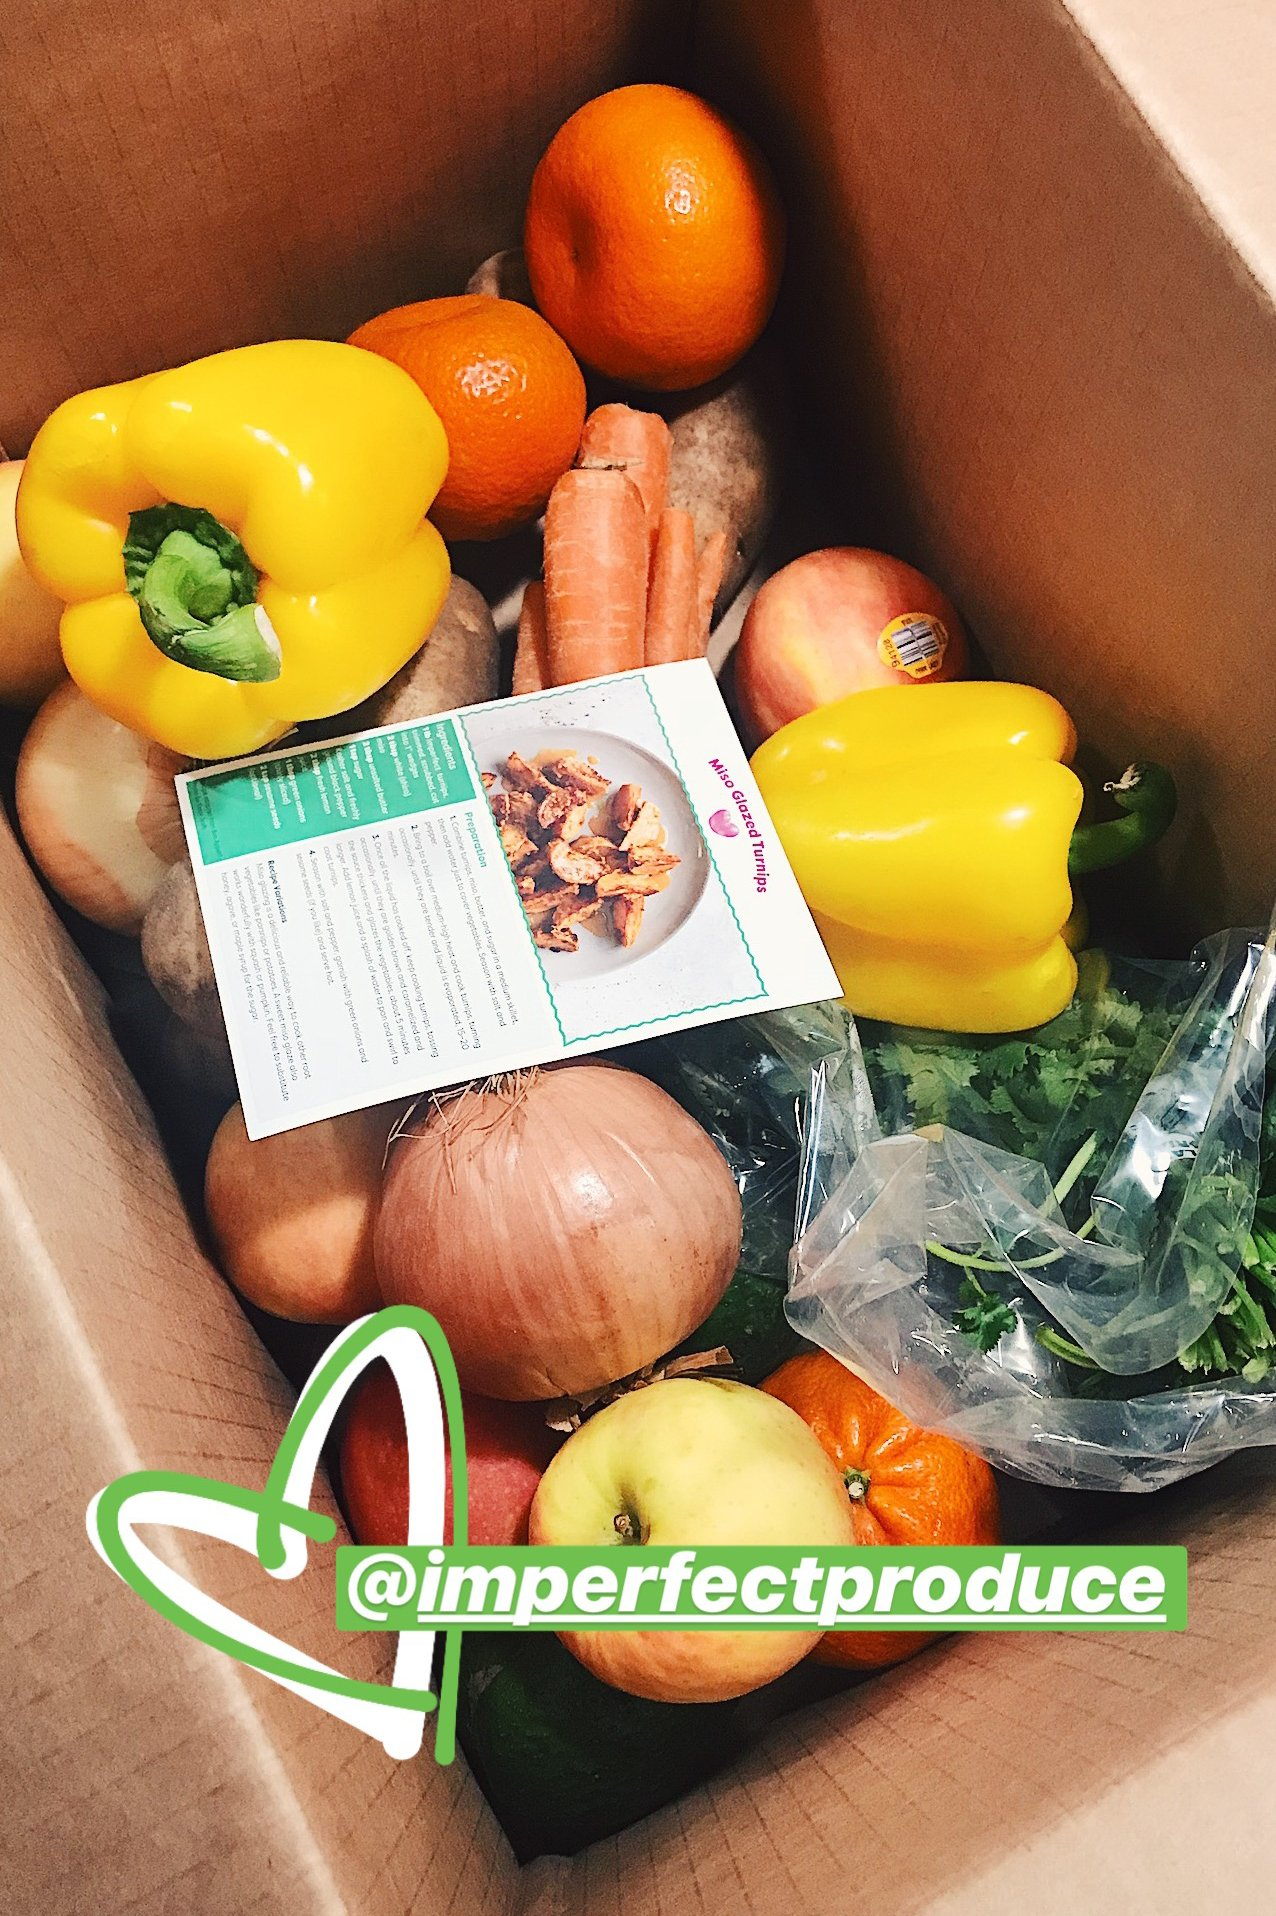 A box of produce from Imperfect Produce. It's important to plan around what food you already have before purchasing new.